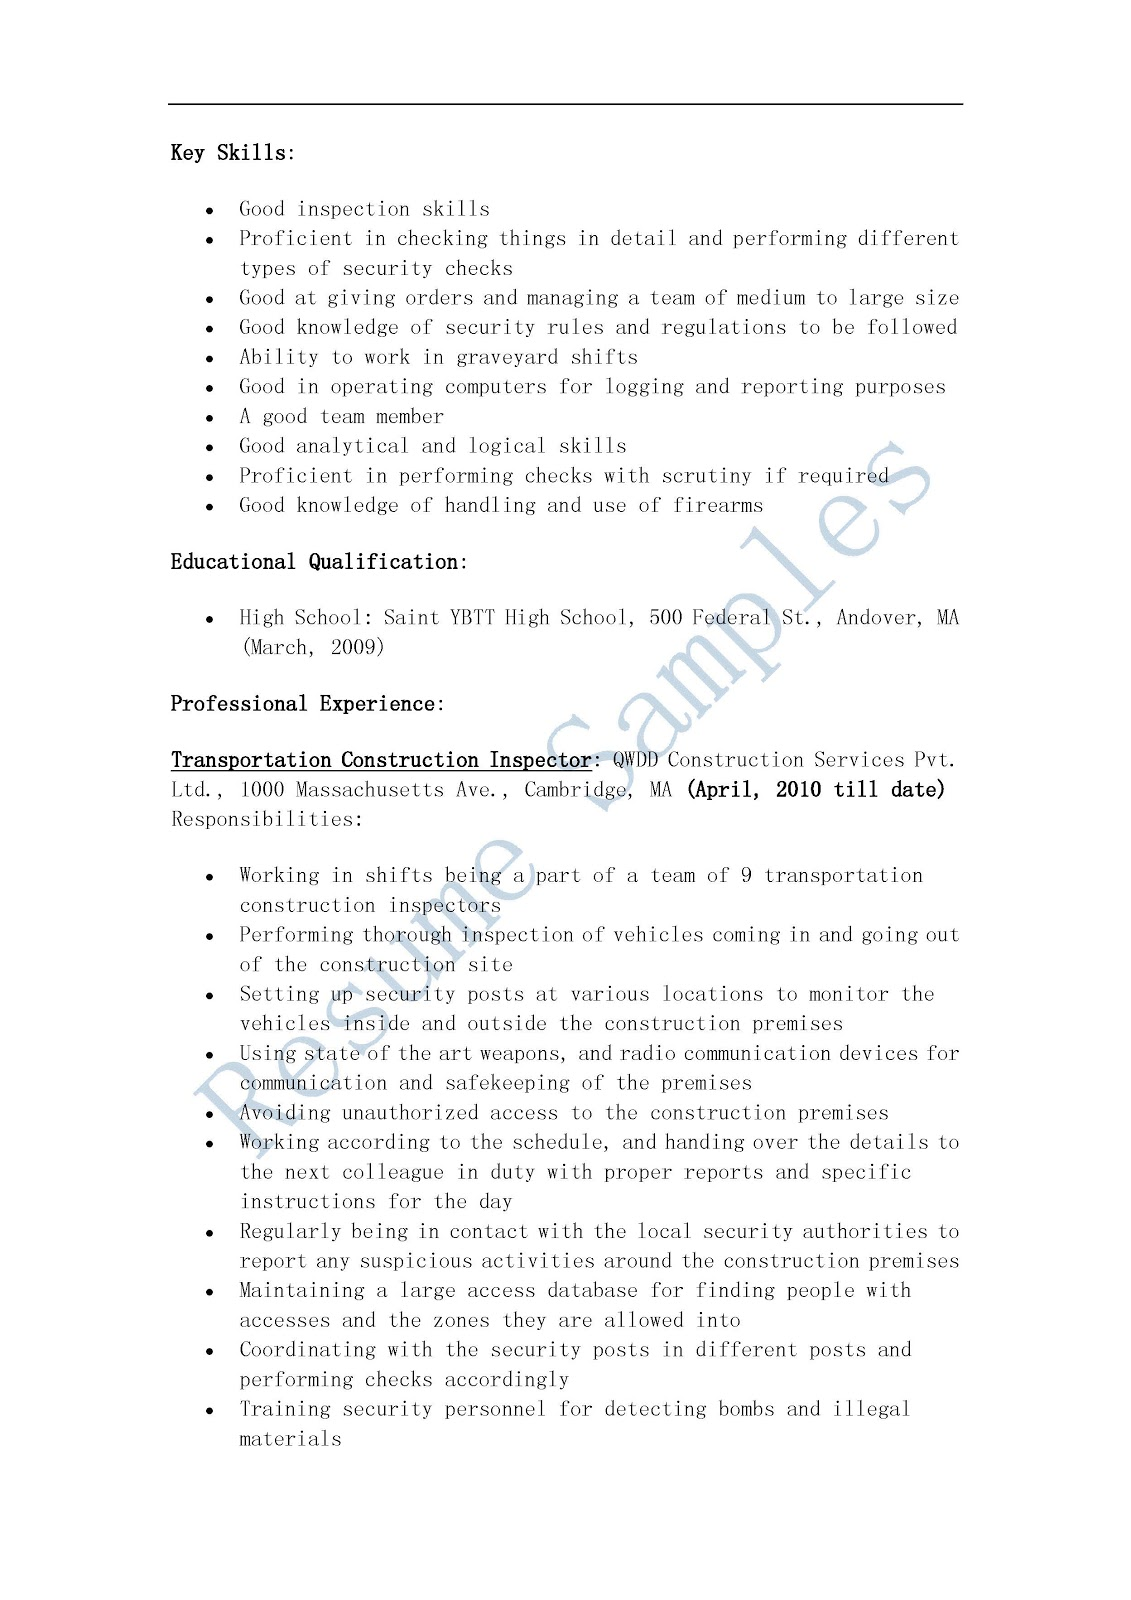 contos dunne communications  u2013 cover letter for resume